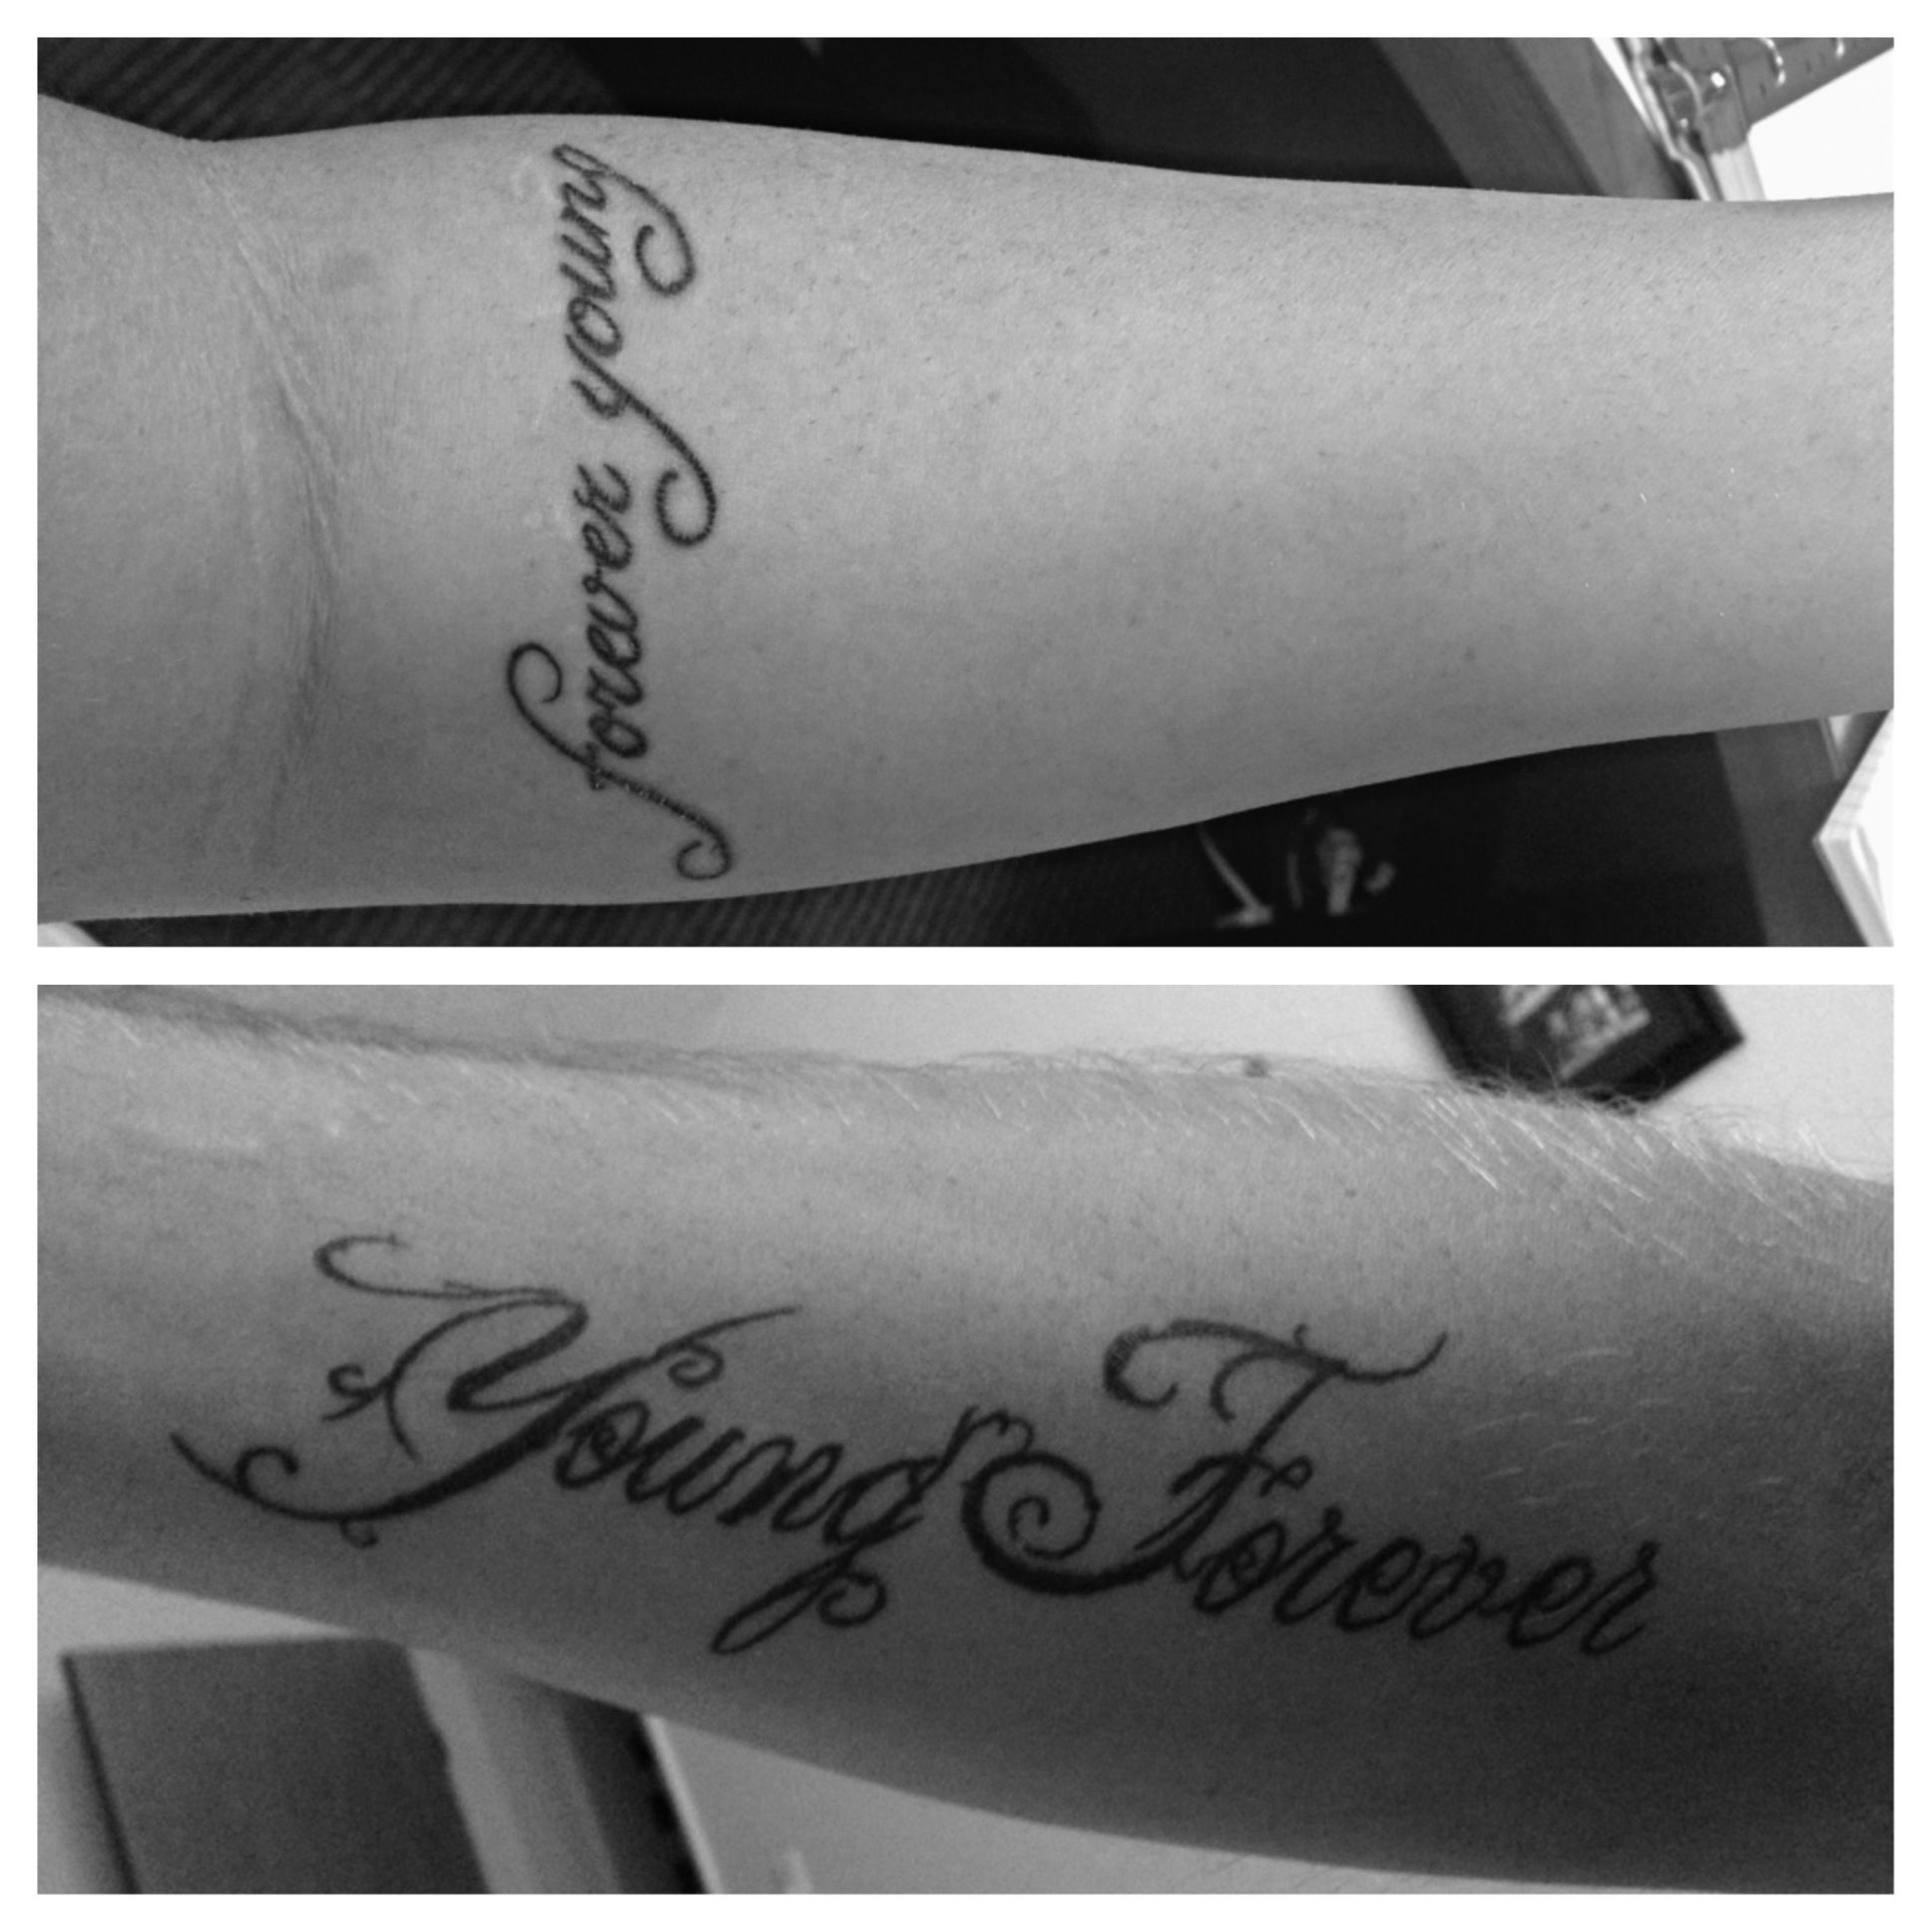 Our couples tattoo forever young our wedding song on for Forever young in japanese tattoo